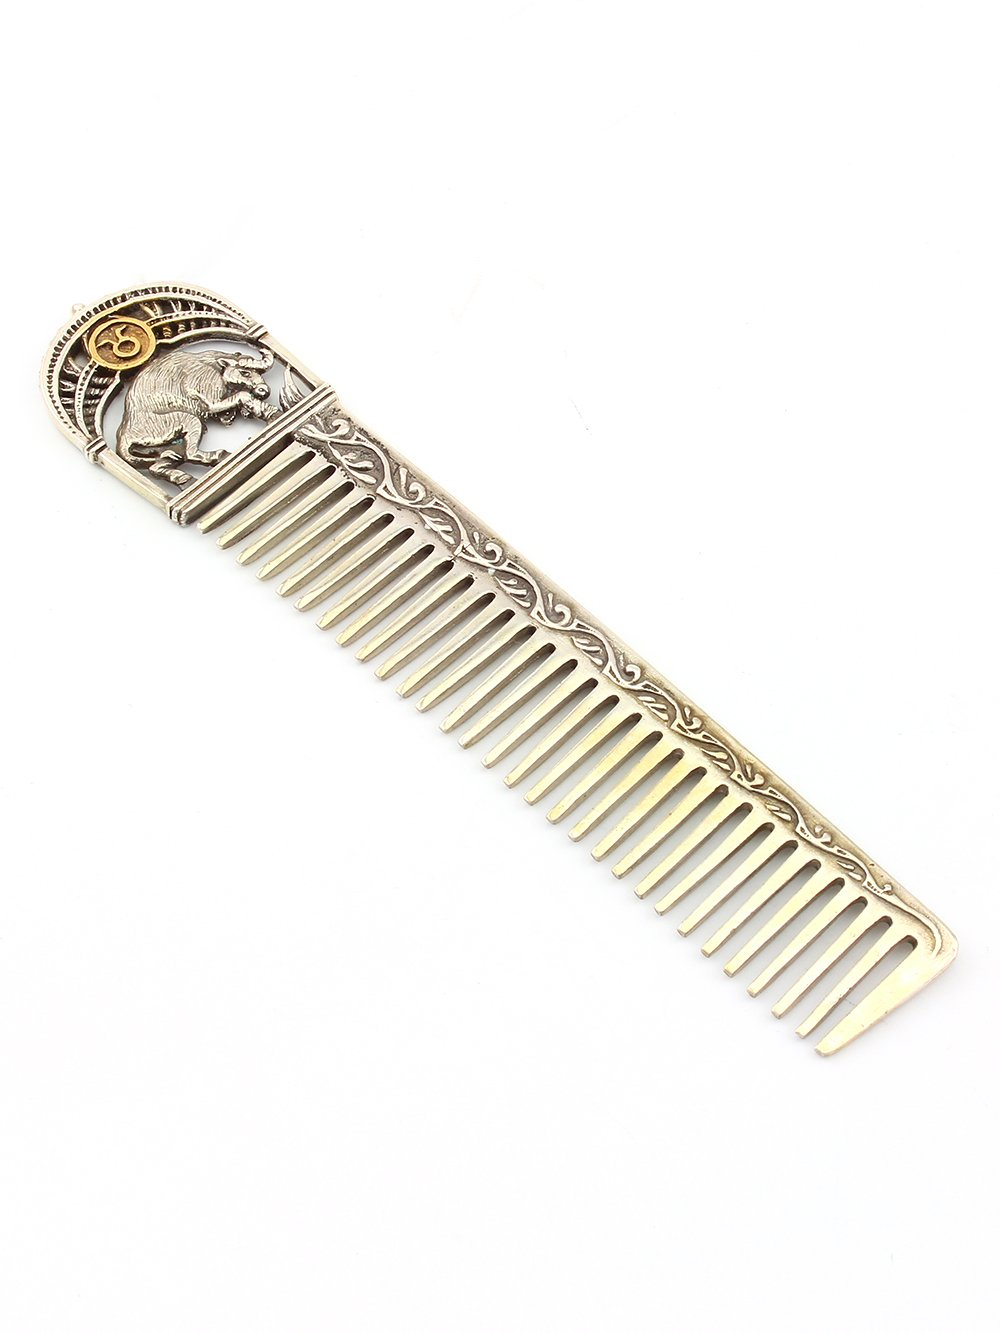 Silver Hair comb with Zodiac Horoscope Astrology Sign ''Taurus''